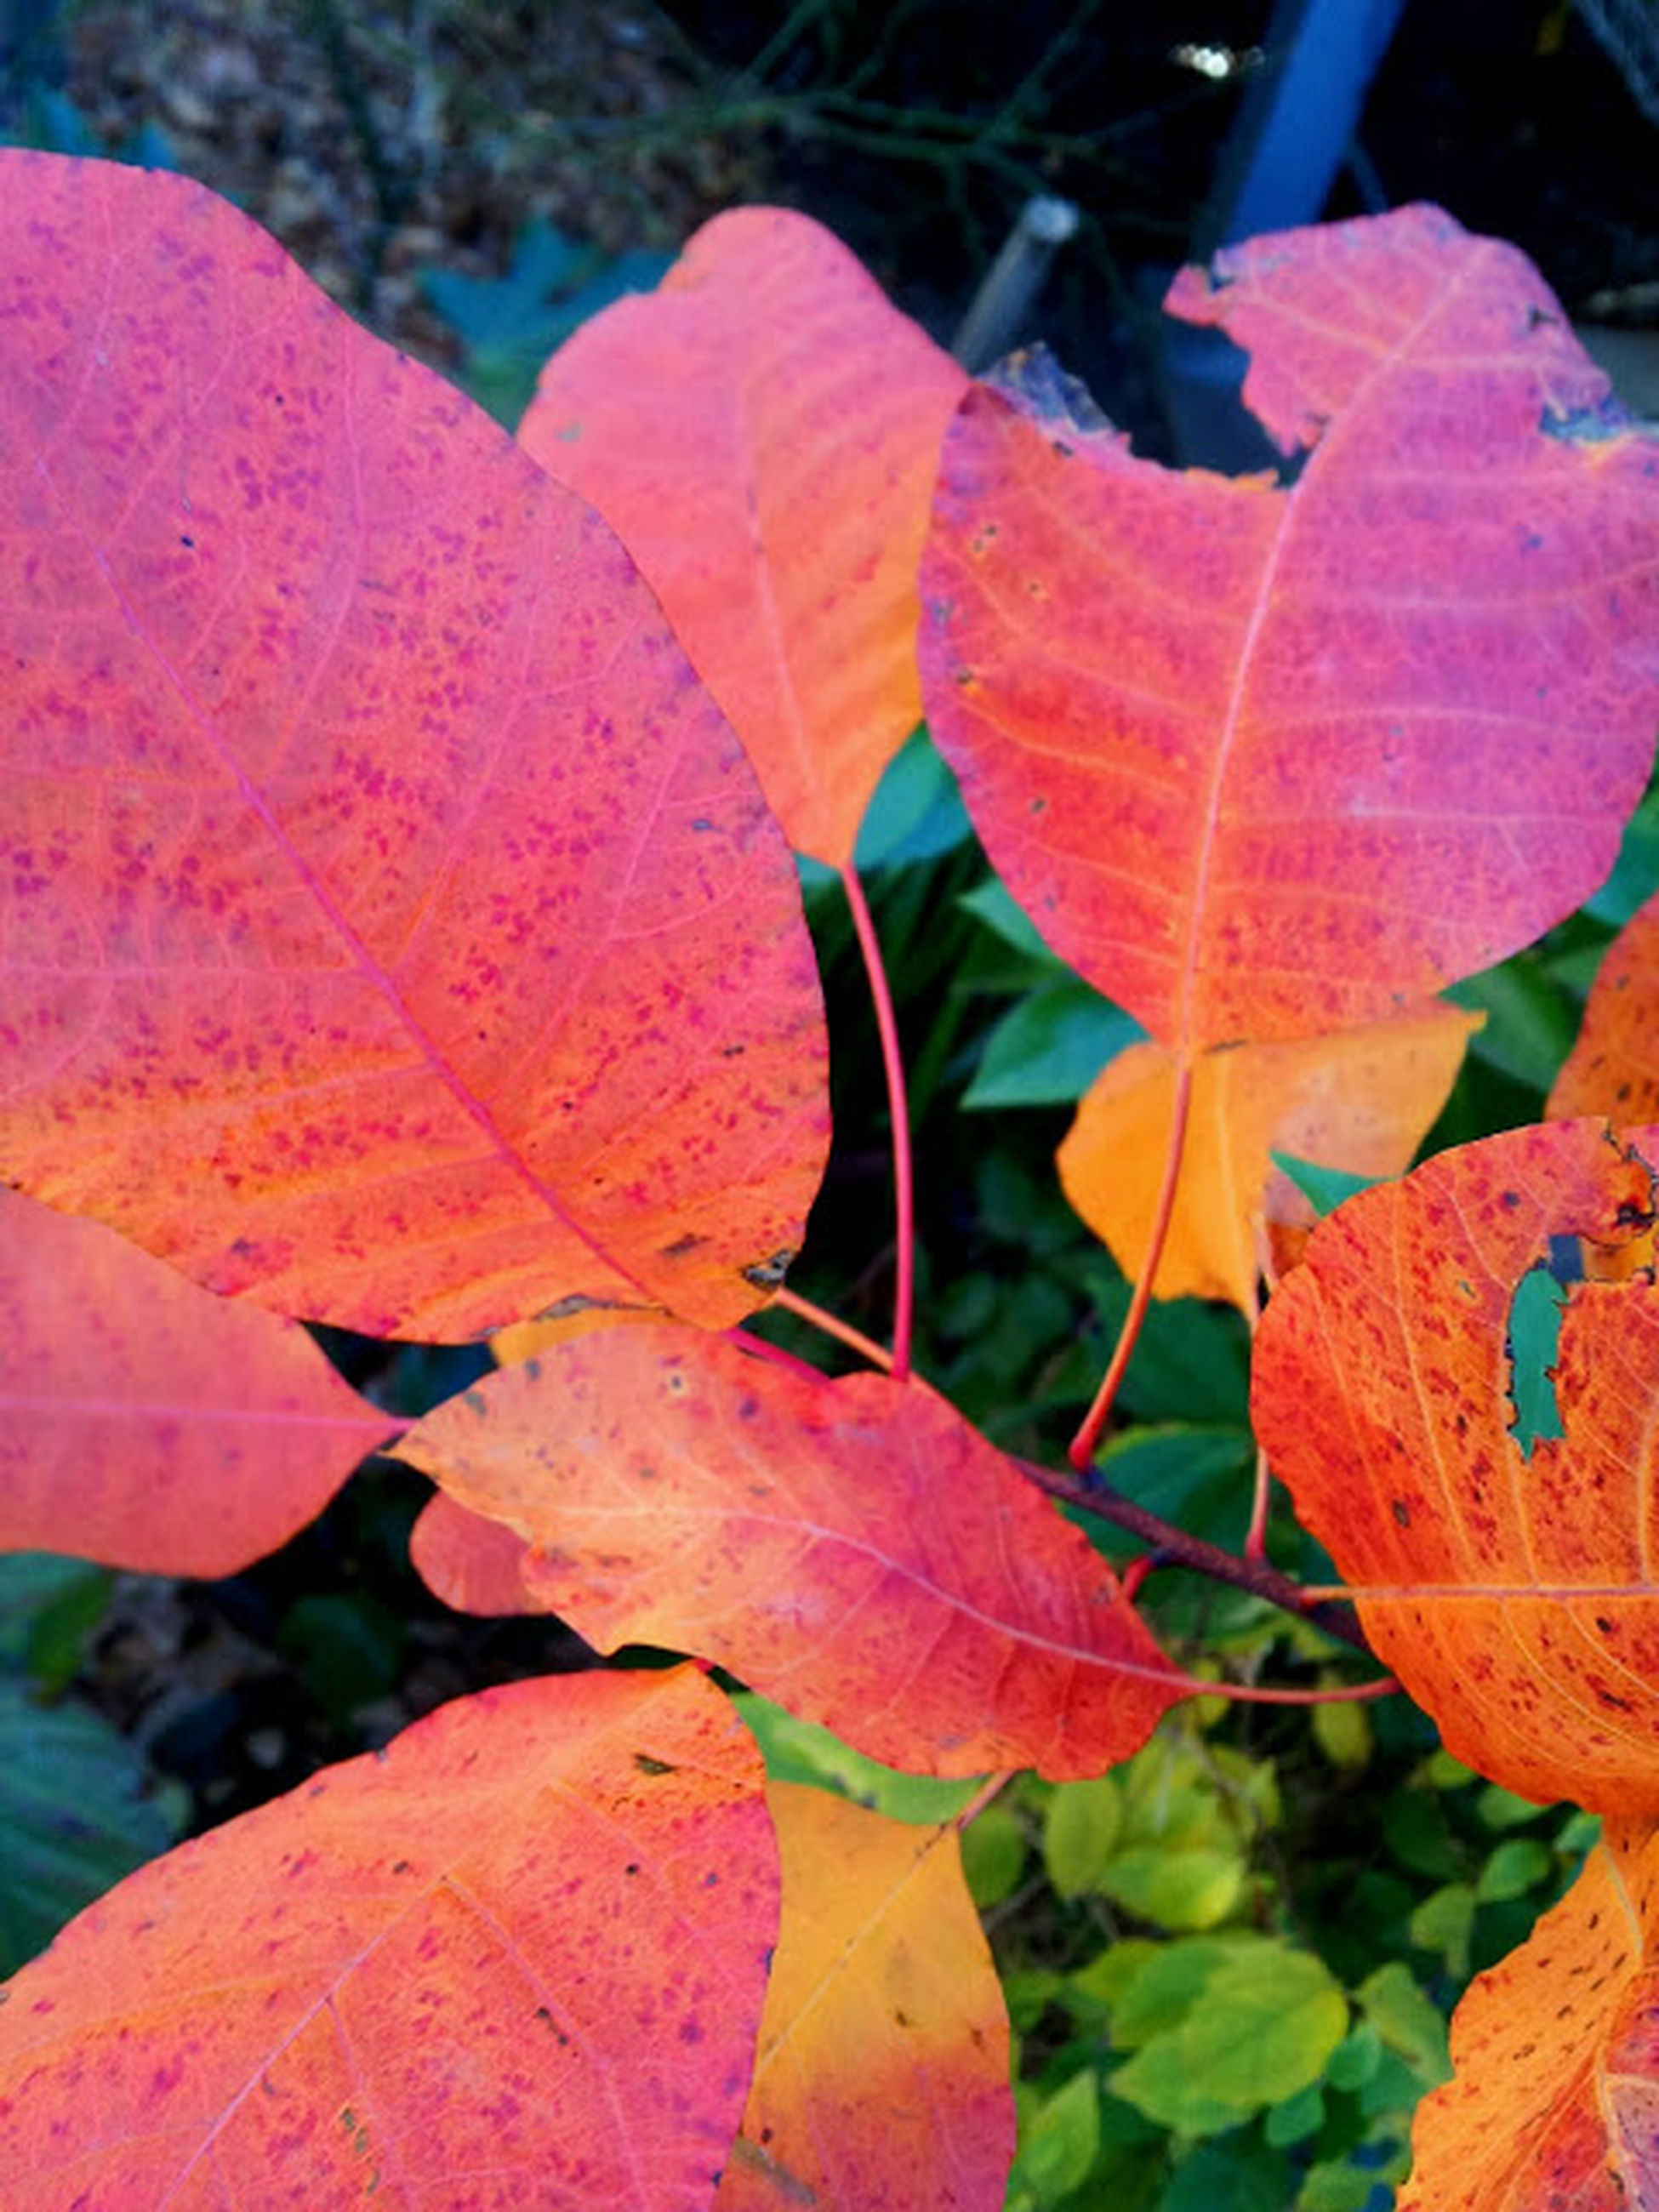 leaf, leaf vein, close-up, focus on foreground, autumn, nature, growth, season, change, fragility, beauty in nature, plant, natural pattern, orange color, leaves, day, red, outdoors, no people, tranquility